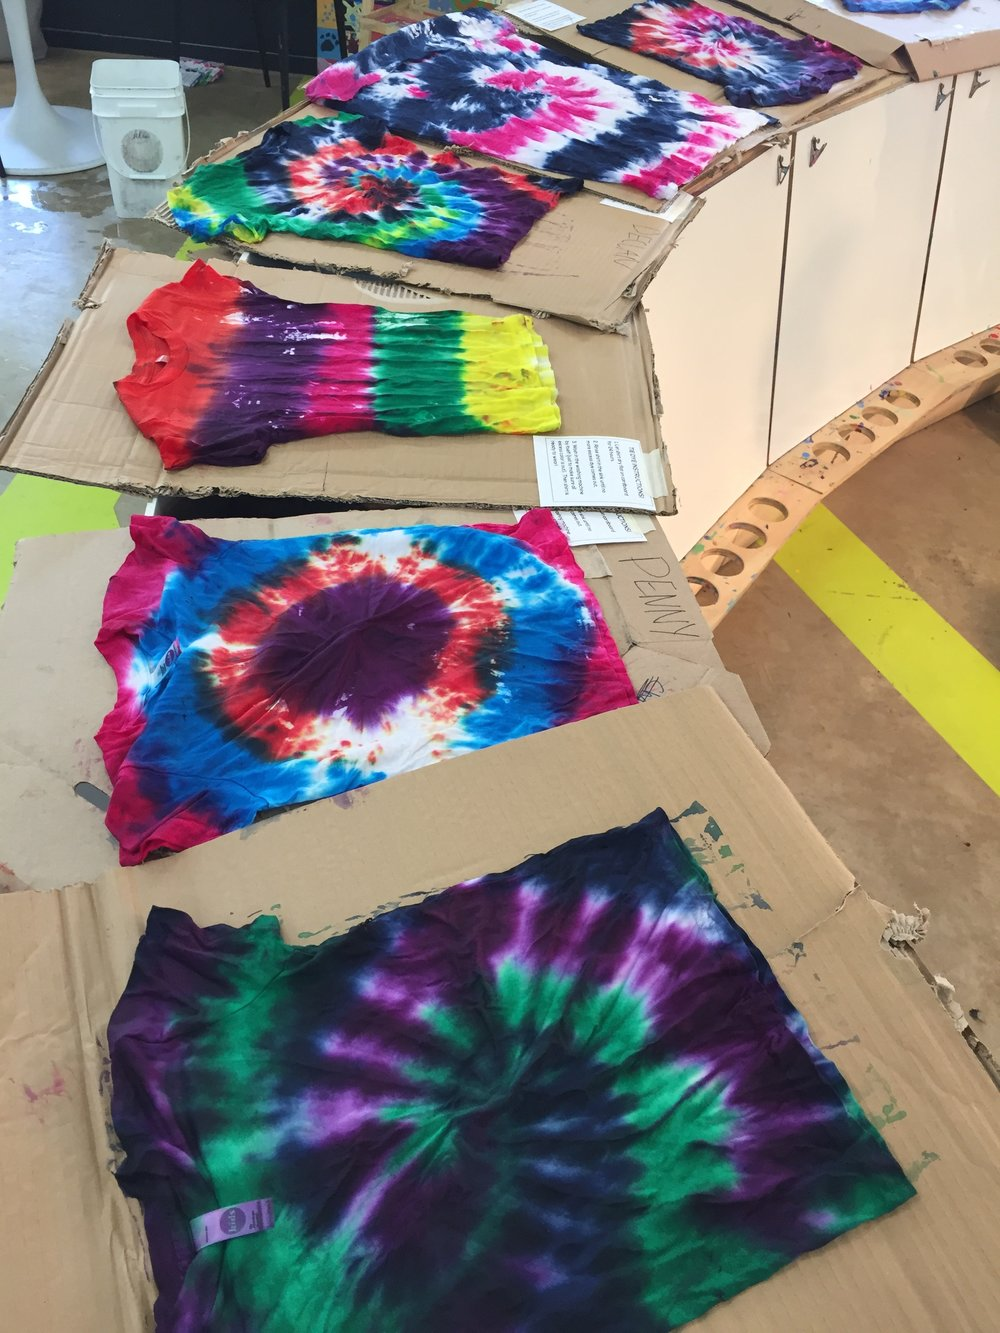 Saturday, May 26  - Tie Dye Saturday10:00 am - 1:30 pm$10 members / $15 non-membersCome tie dye a shirt!  Price includes a t-shirt (sizes 2T - Kids XL or onesies).  Shirt will be sent home on a flat piece of cardboard with care instructions!Sign up for a time slot here.*Note - we'll be closing at 2:00 for a private event, so if you're wanting to add on Art Free Play, make sure to come before your tie-dye time slot!